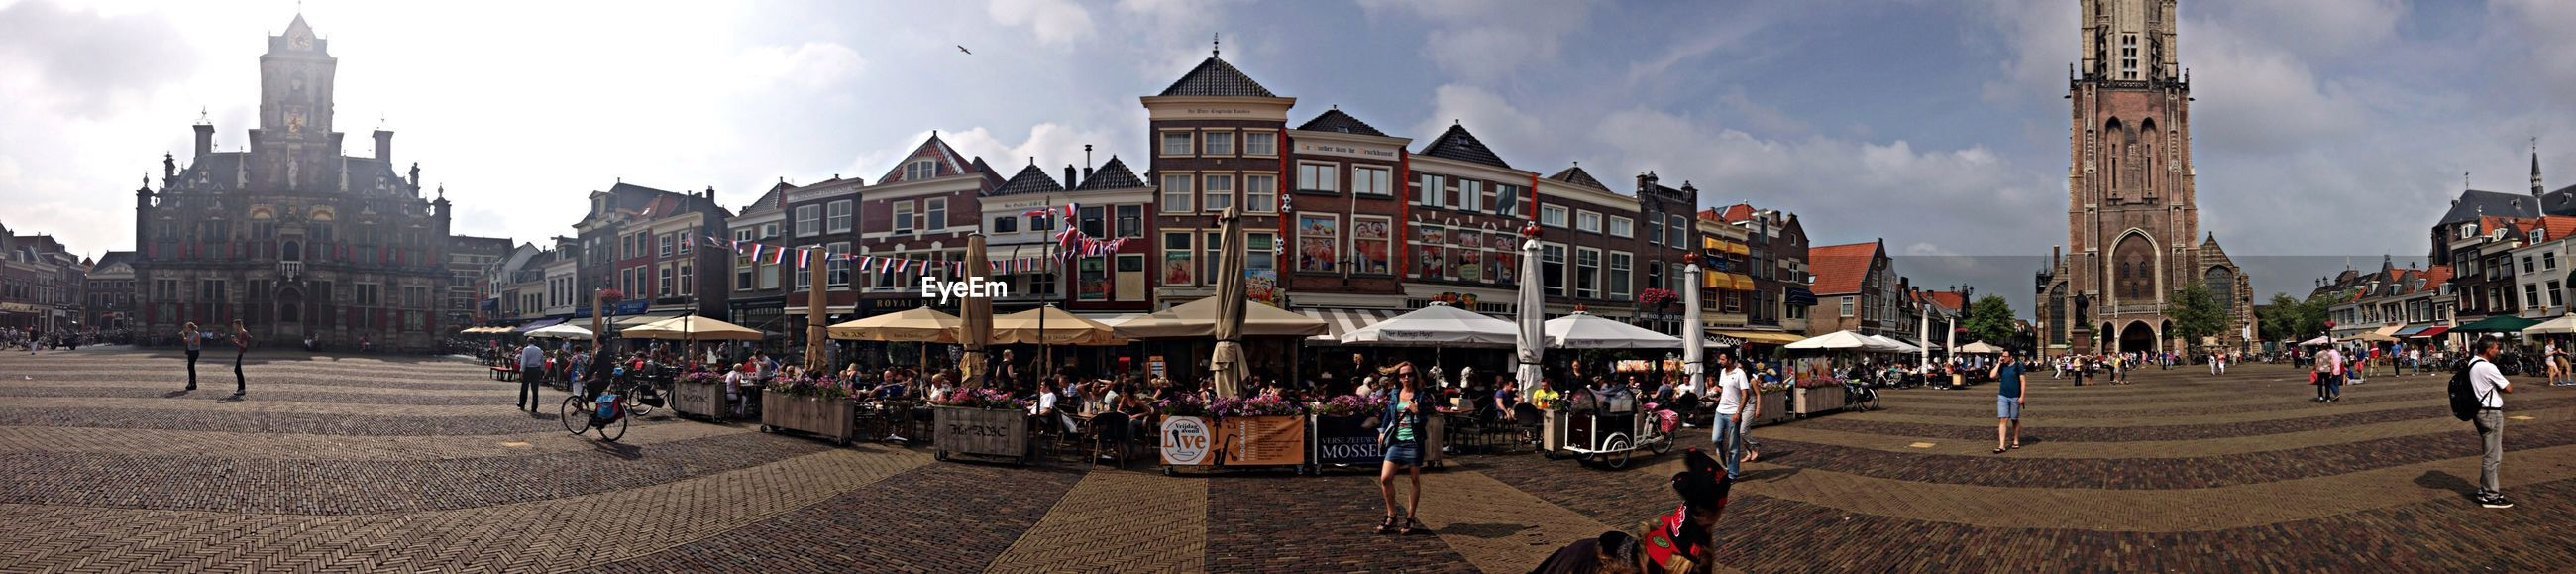 Panoramic view of market stalls in city against sky